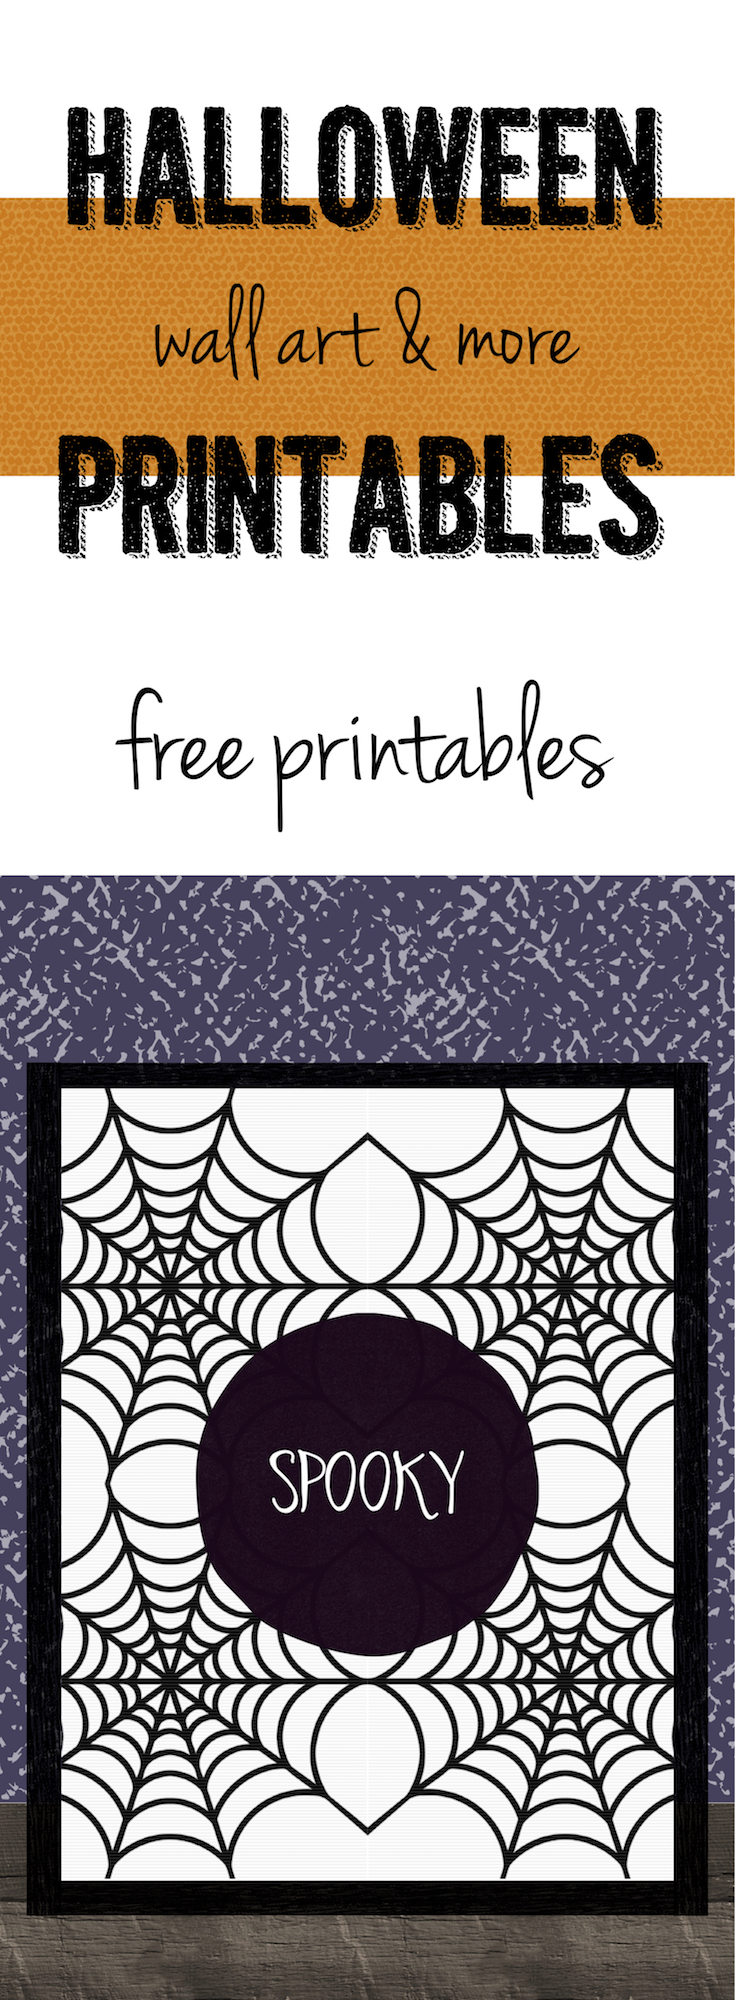 Spooky Halloween Spider Web Free Printable. Decorate your house for Halloween with this free wall art. Just print and frame. Easy decor!